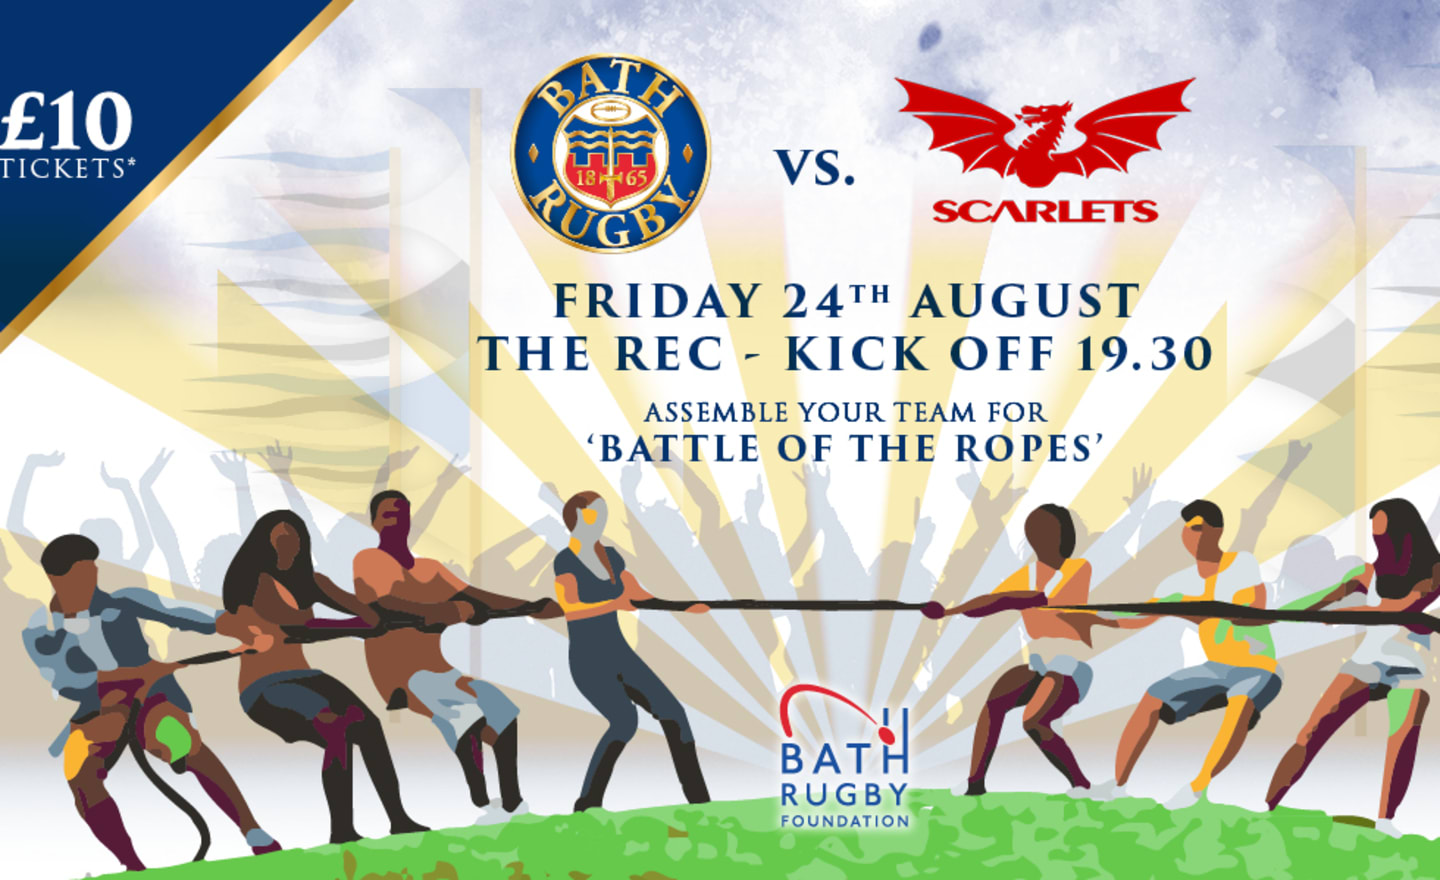 Bath Rugby announce Foundation fundraiser at Scarlets clash